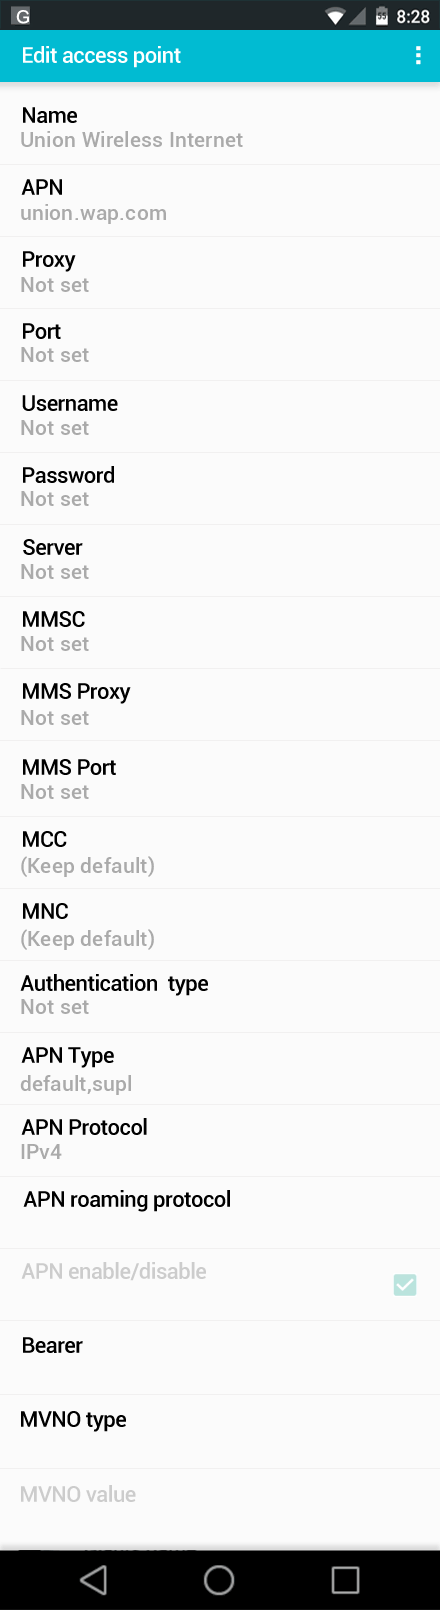 Union Wireless Internet APN settings for Android screenshot